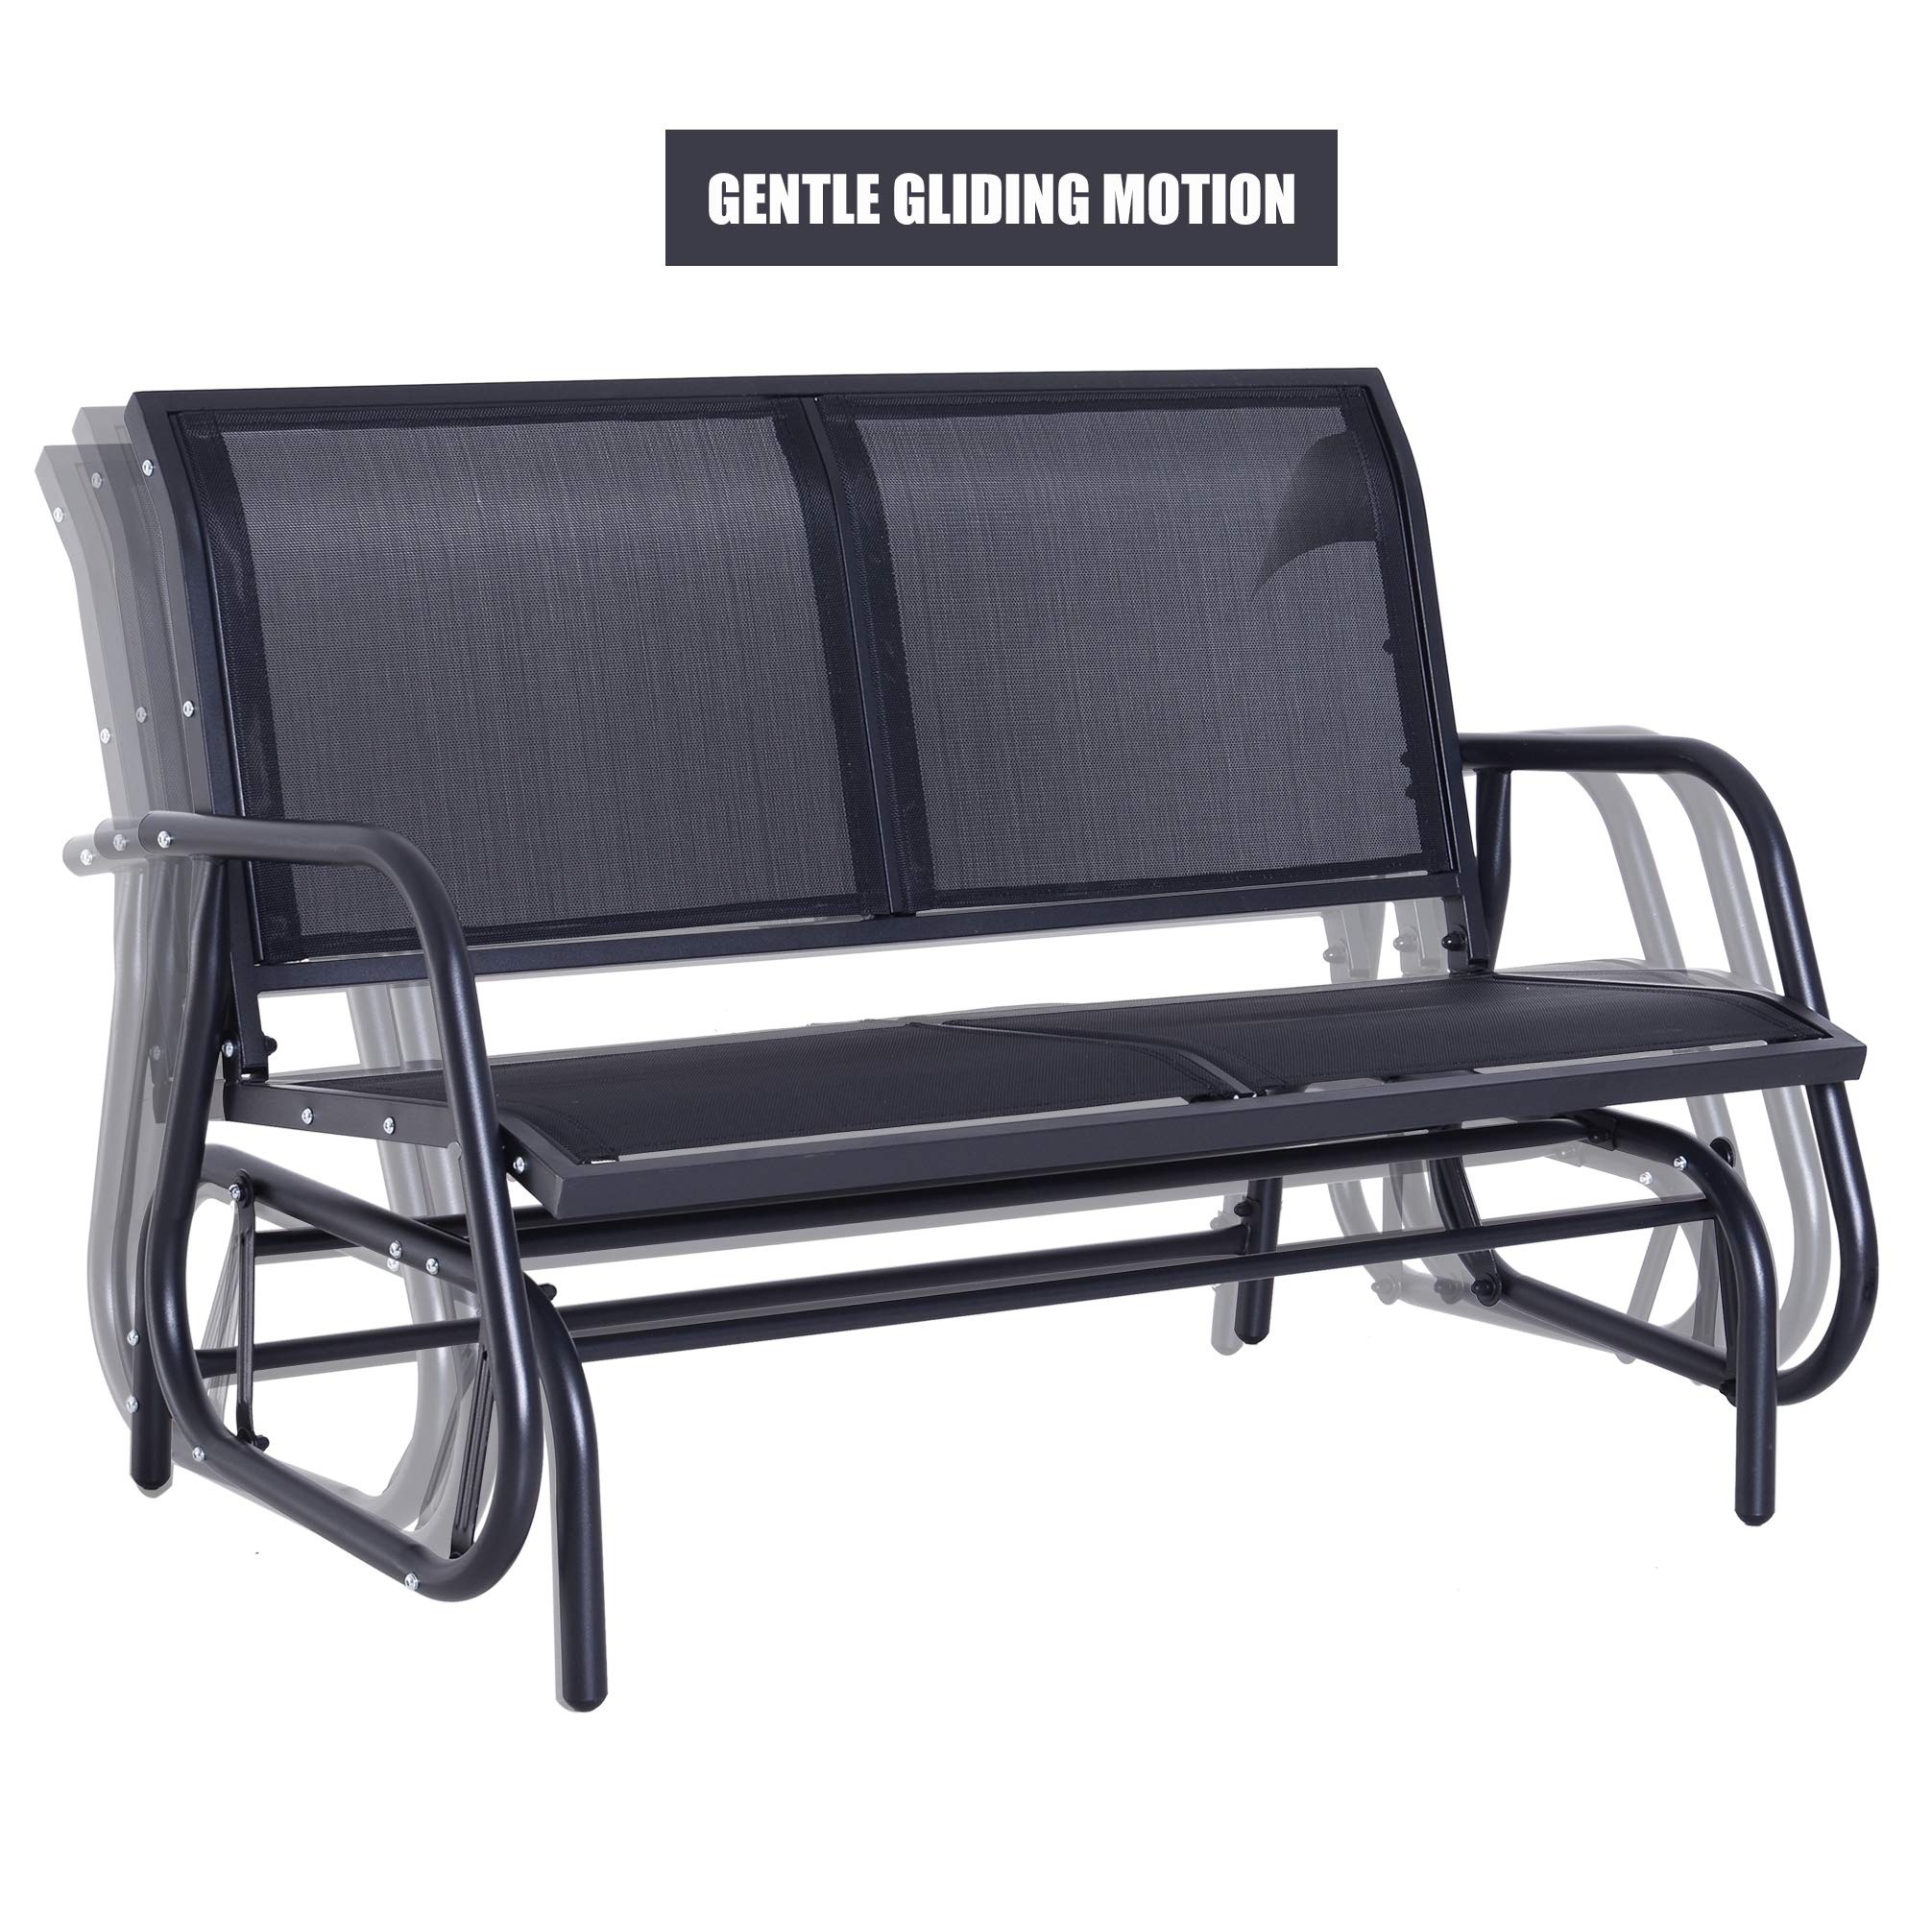 Outsunny 48'' Outdoor Patio Swing Glider Bench Chair - Dark Gray by Outsunny (Image #2)